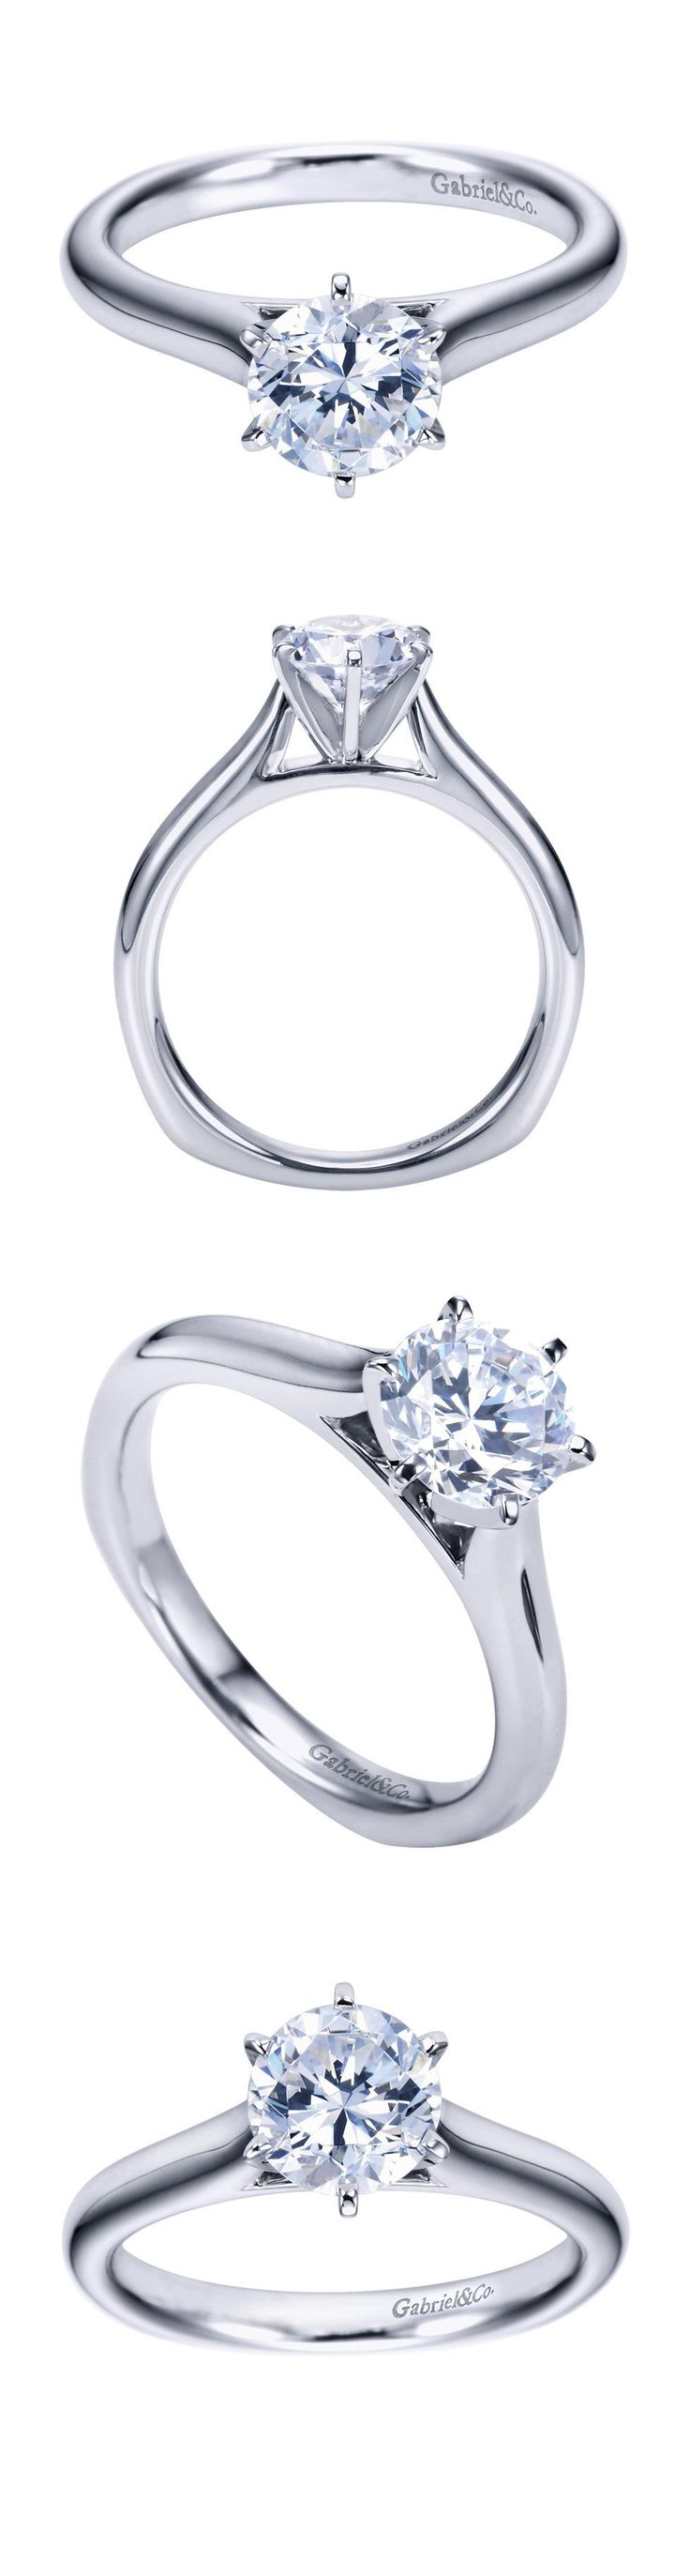 Gabriel & Co. - For the only one, a 14k White Gold Contemporary Solitaire Engagement Ring.